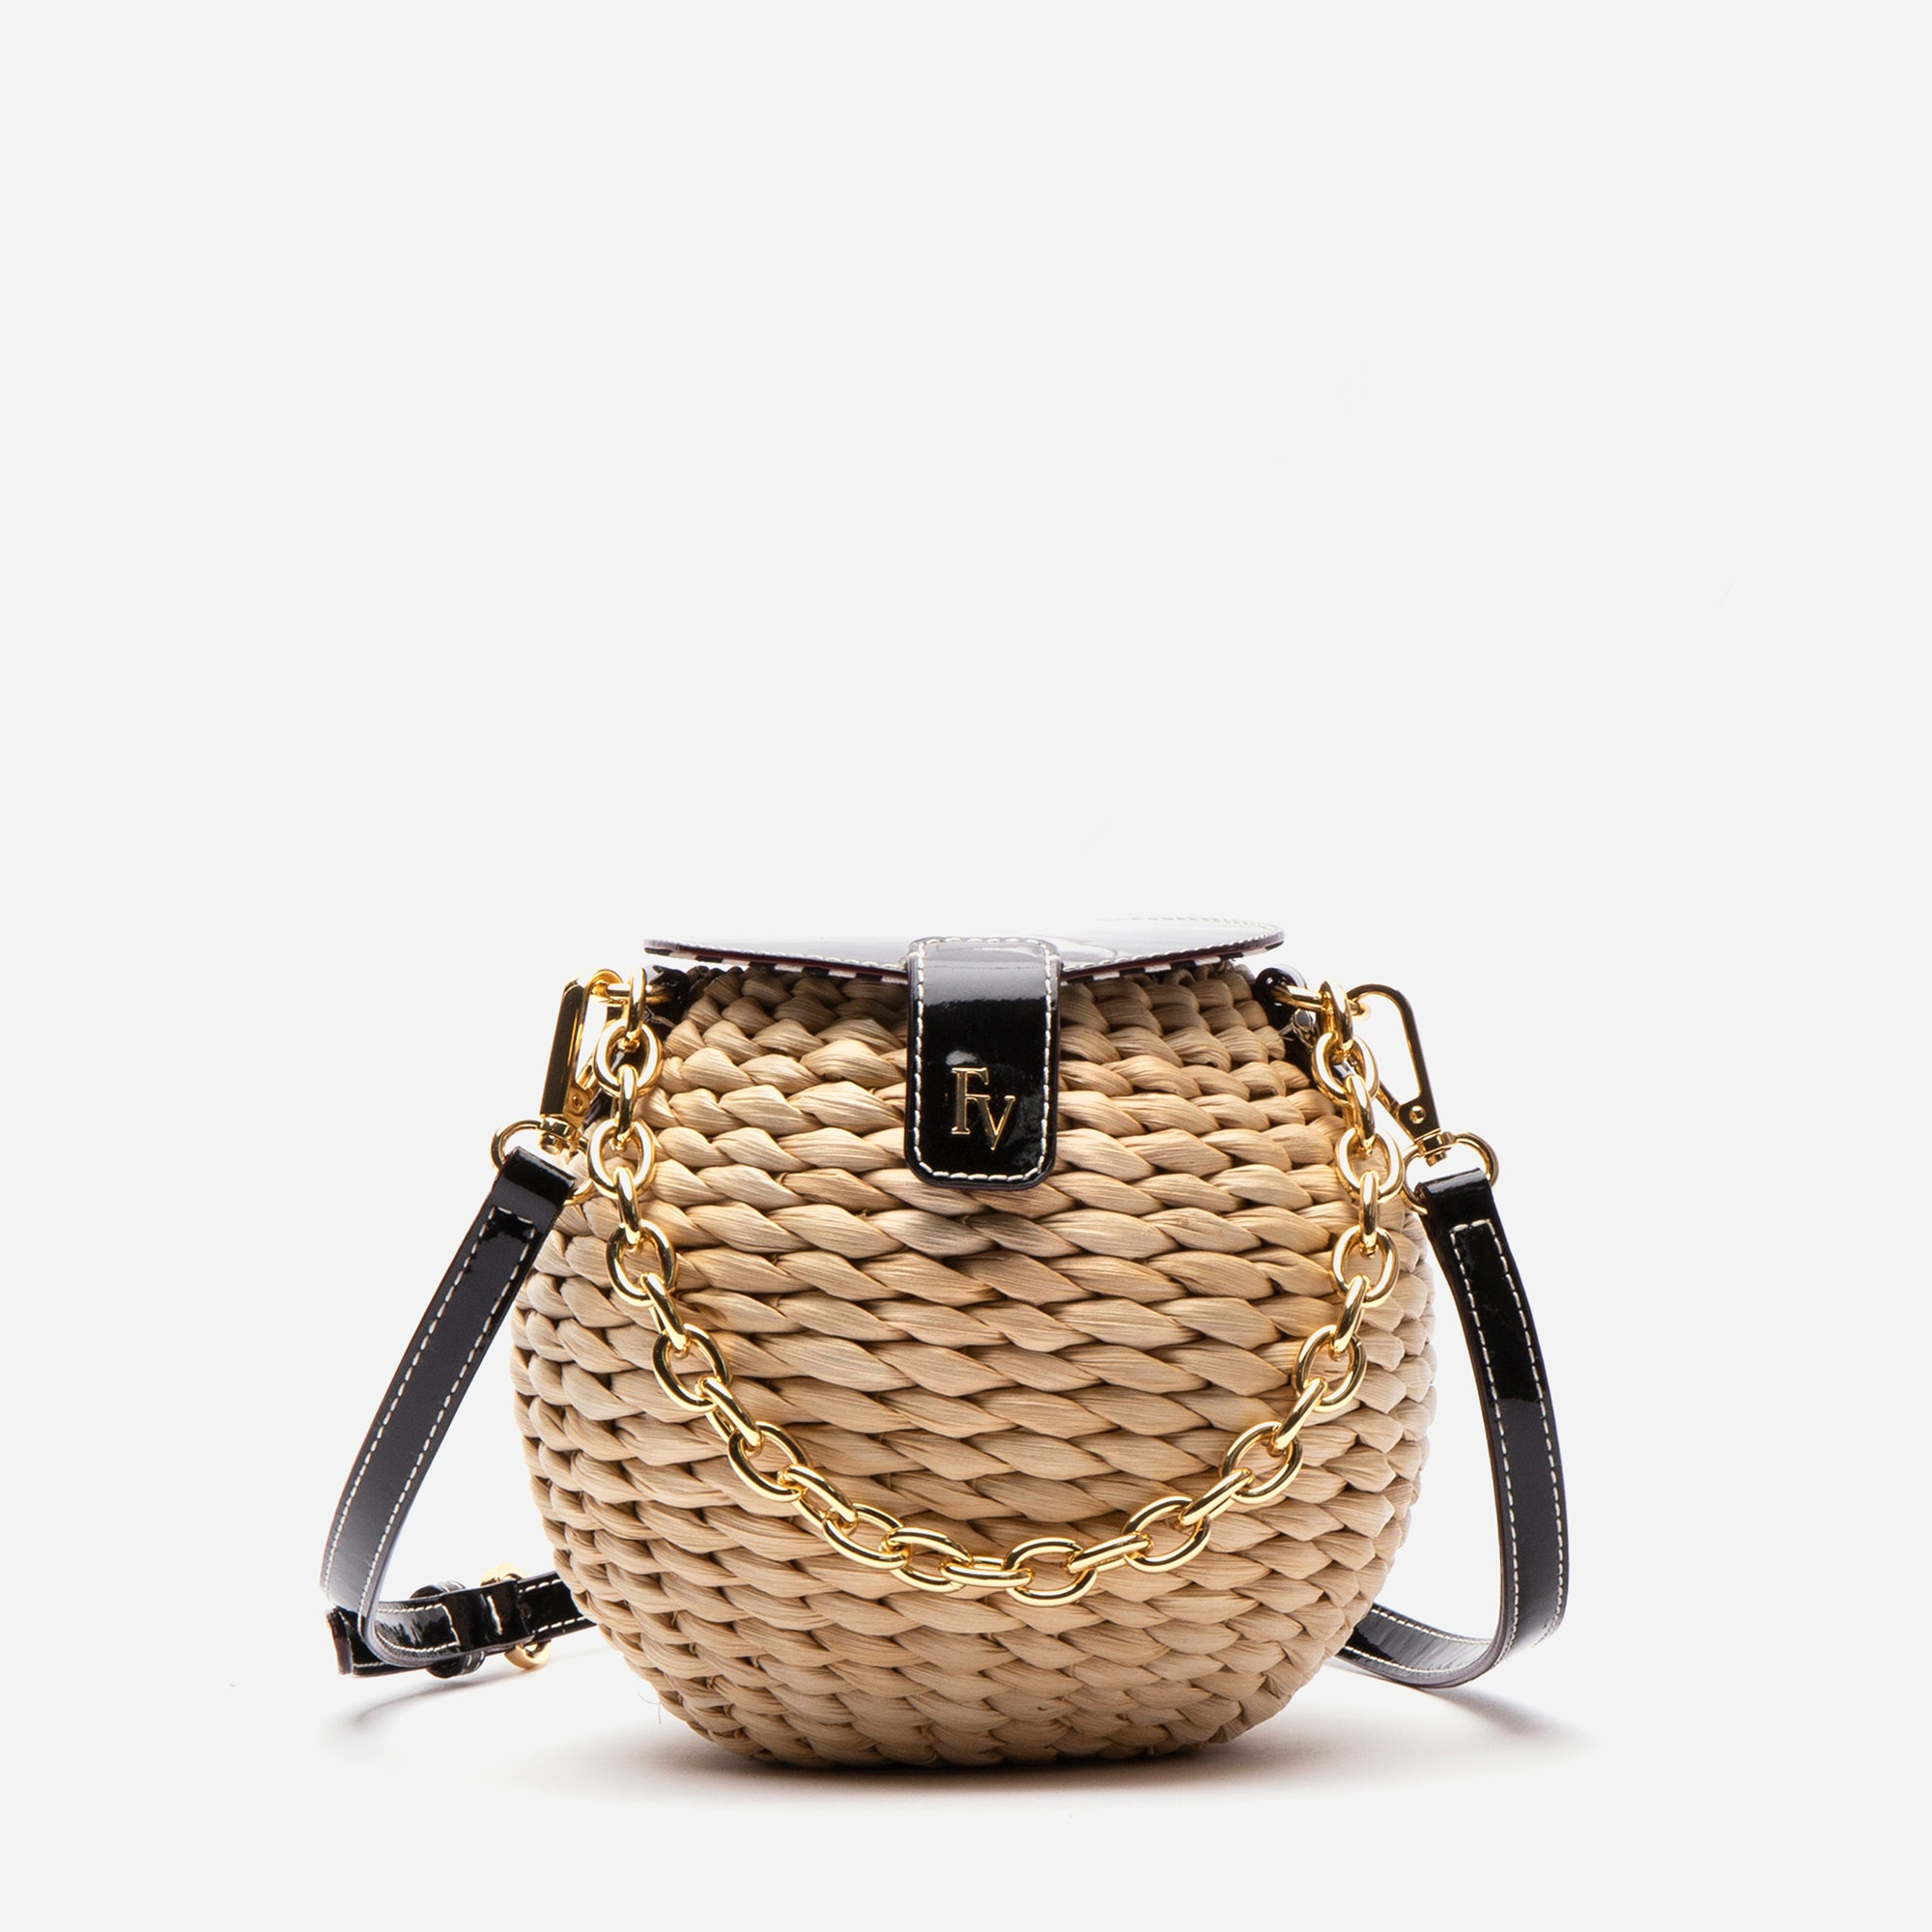 Honeypot Basket Crossbody Black Patent